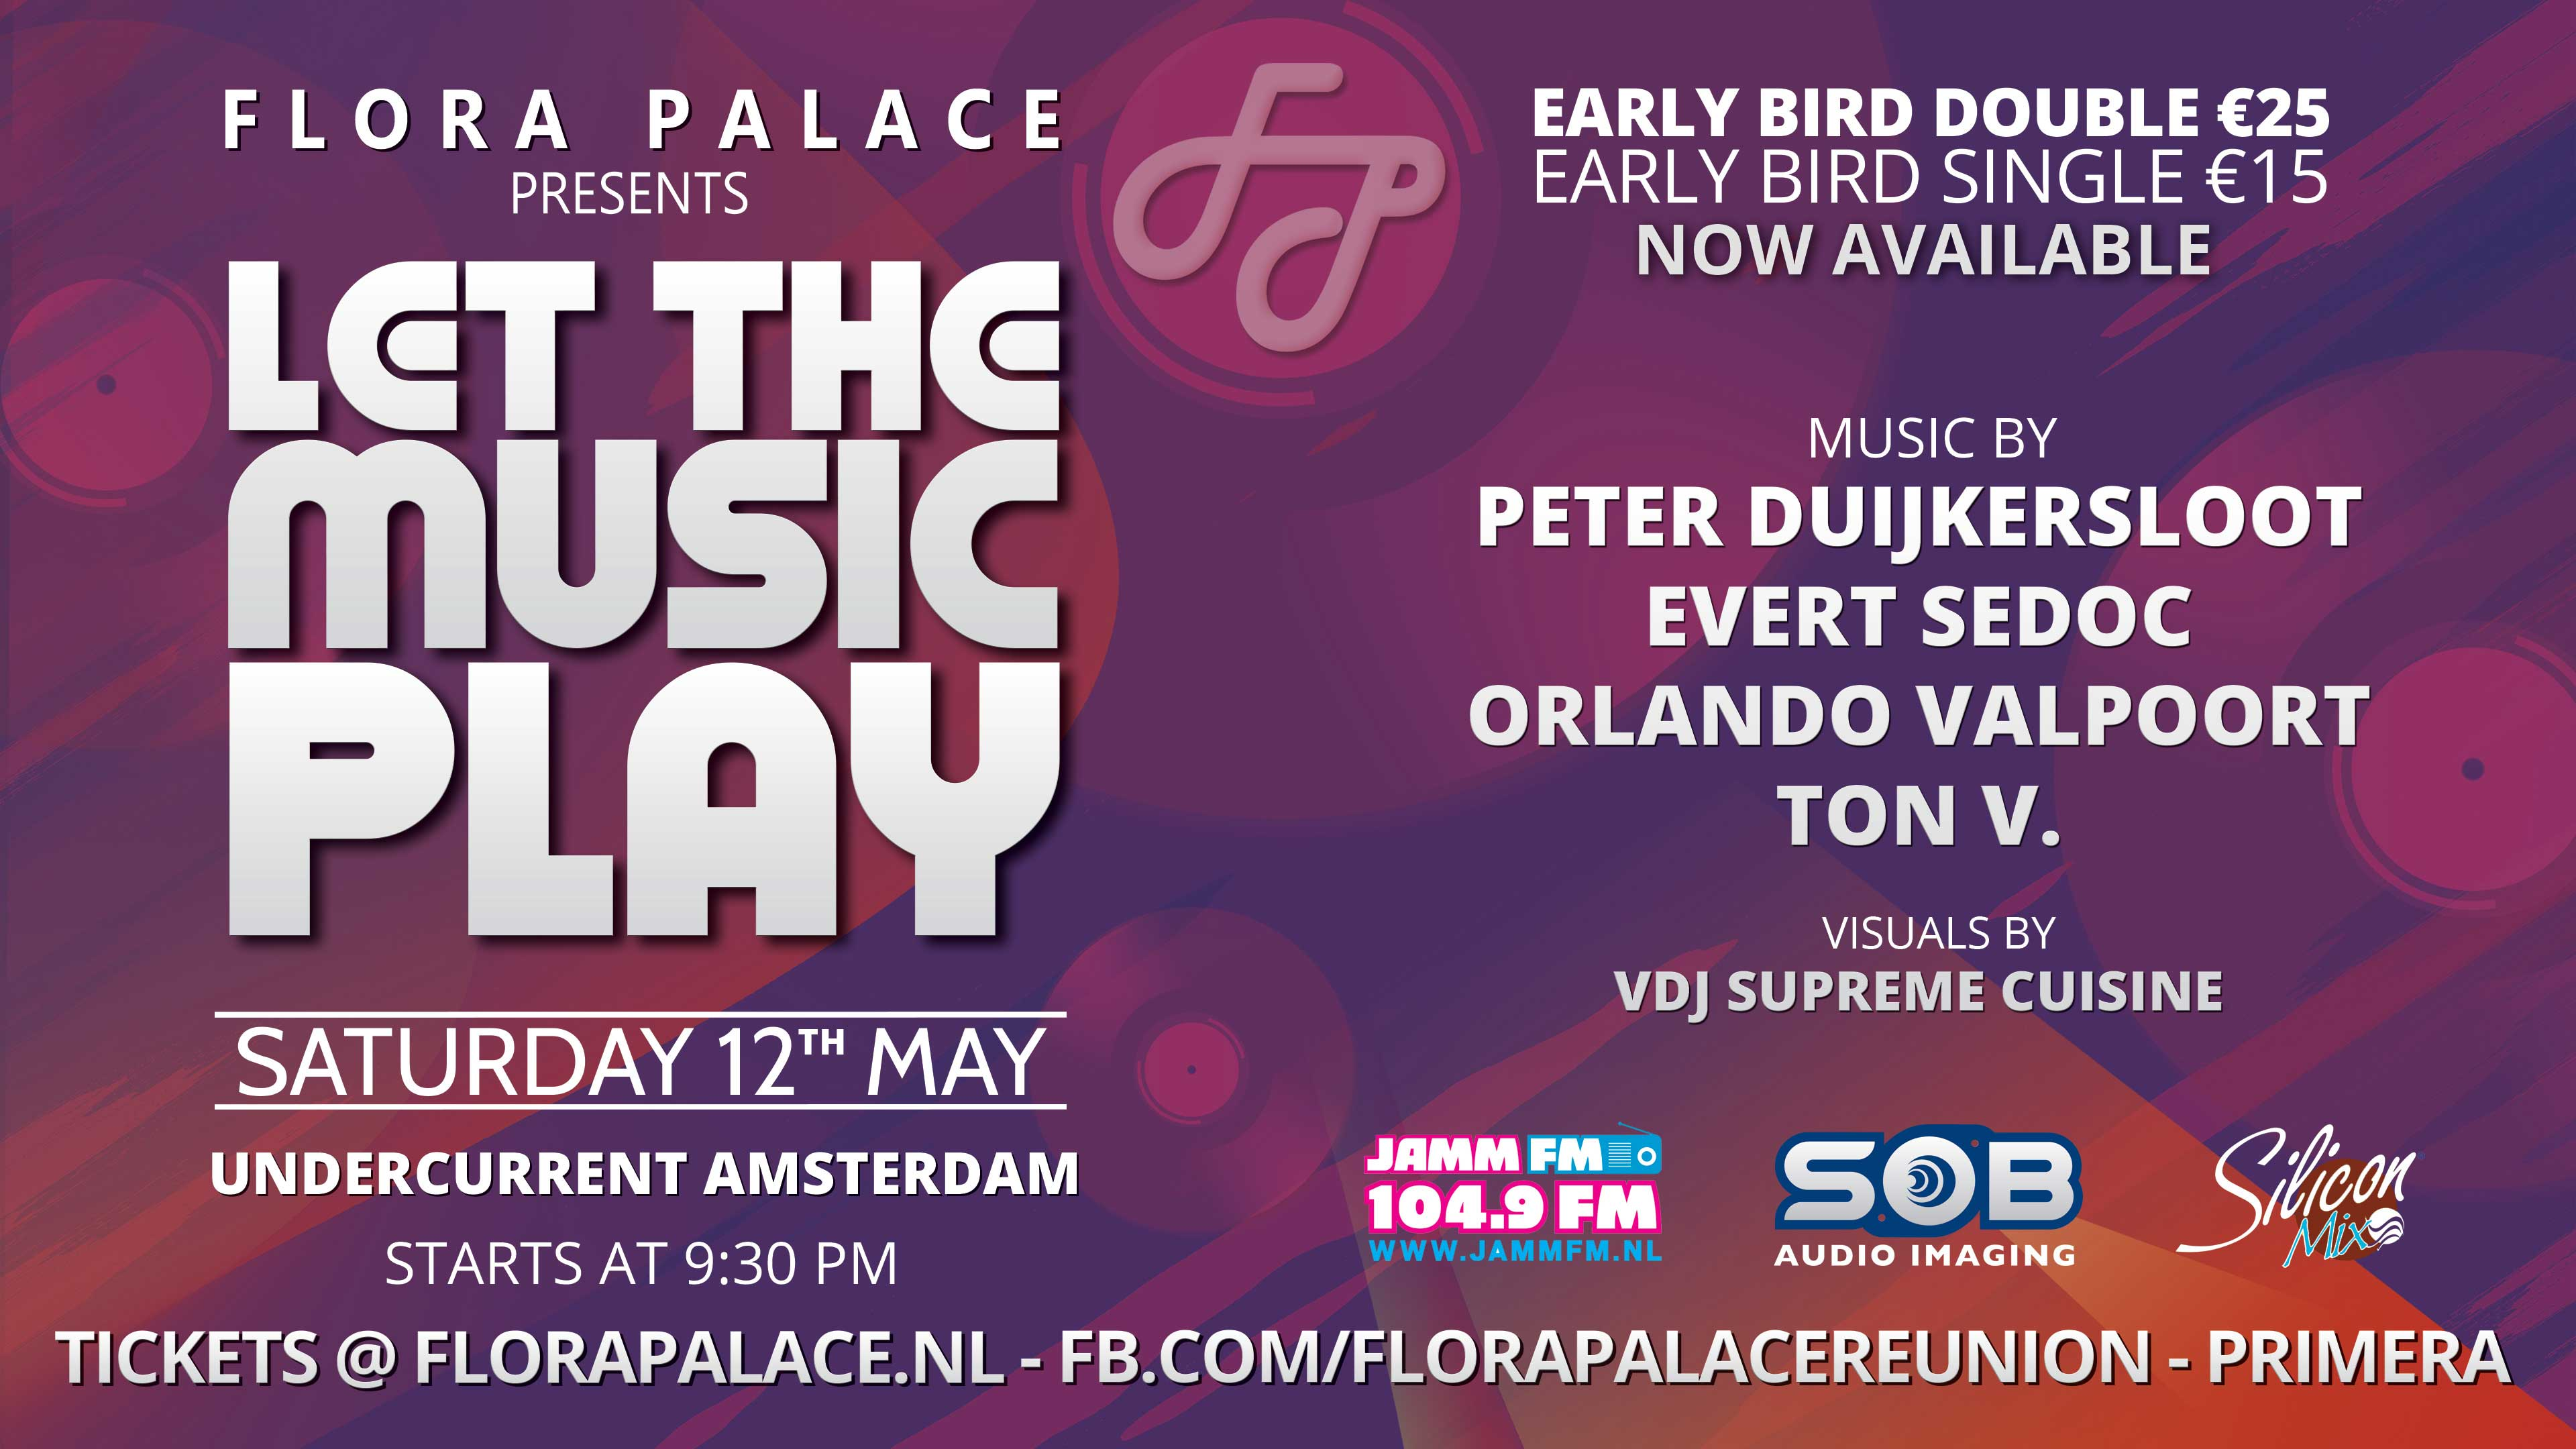 flora palace presents let the music play